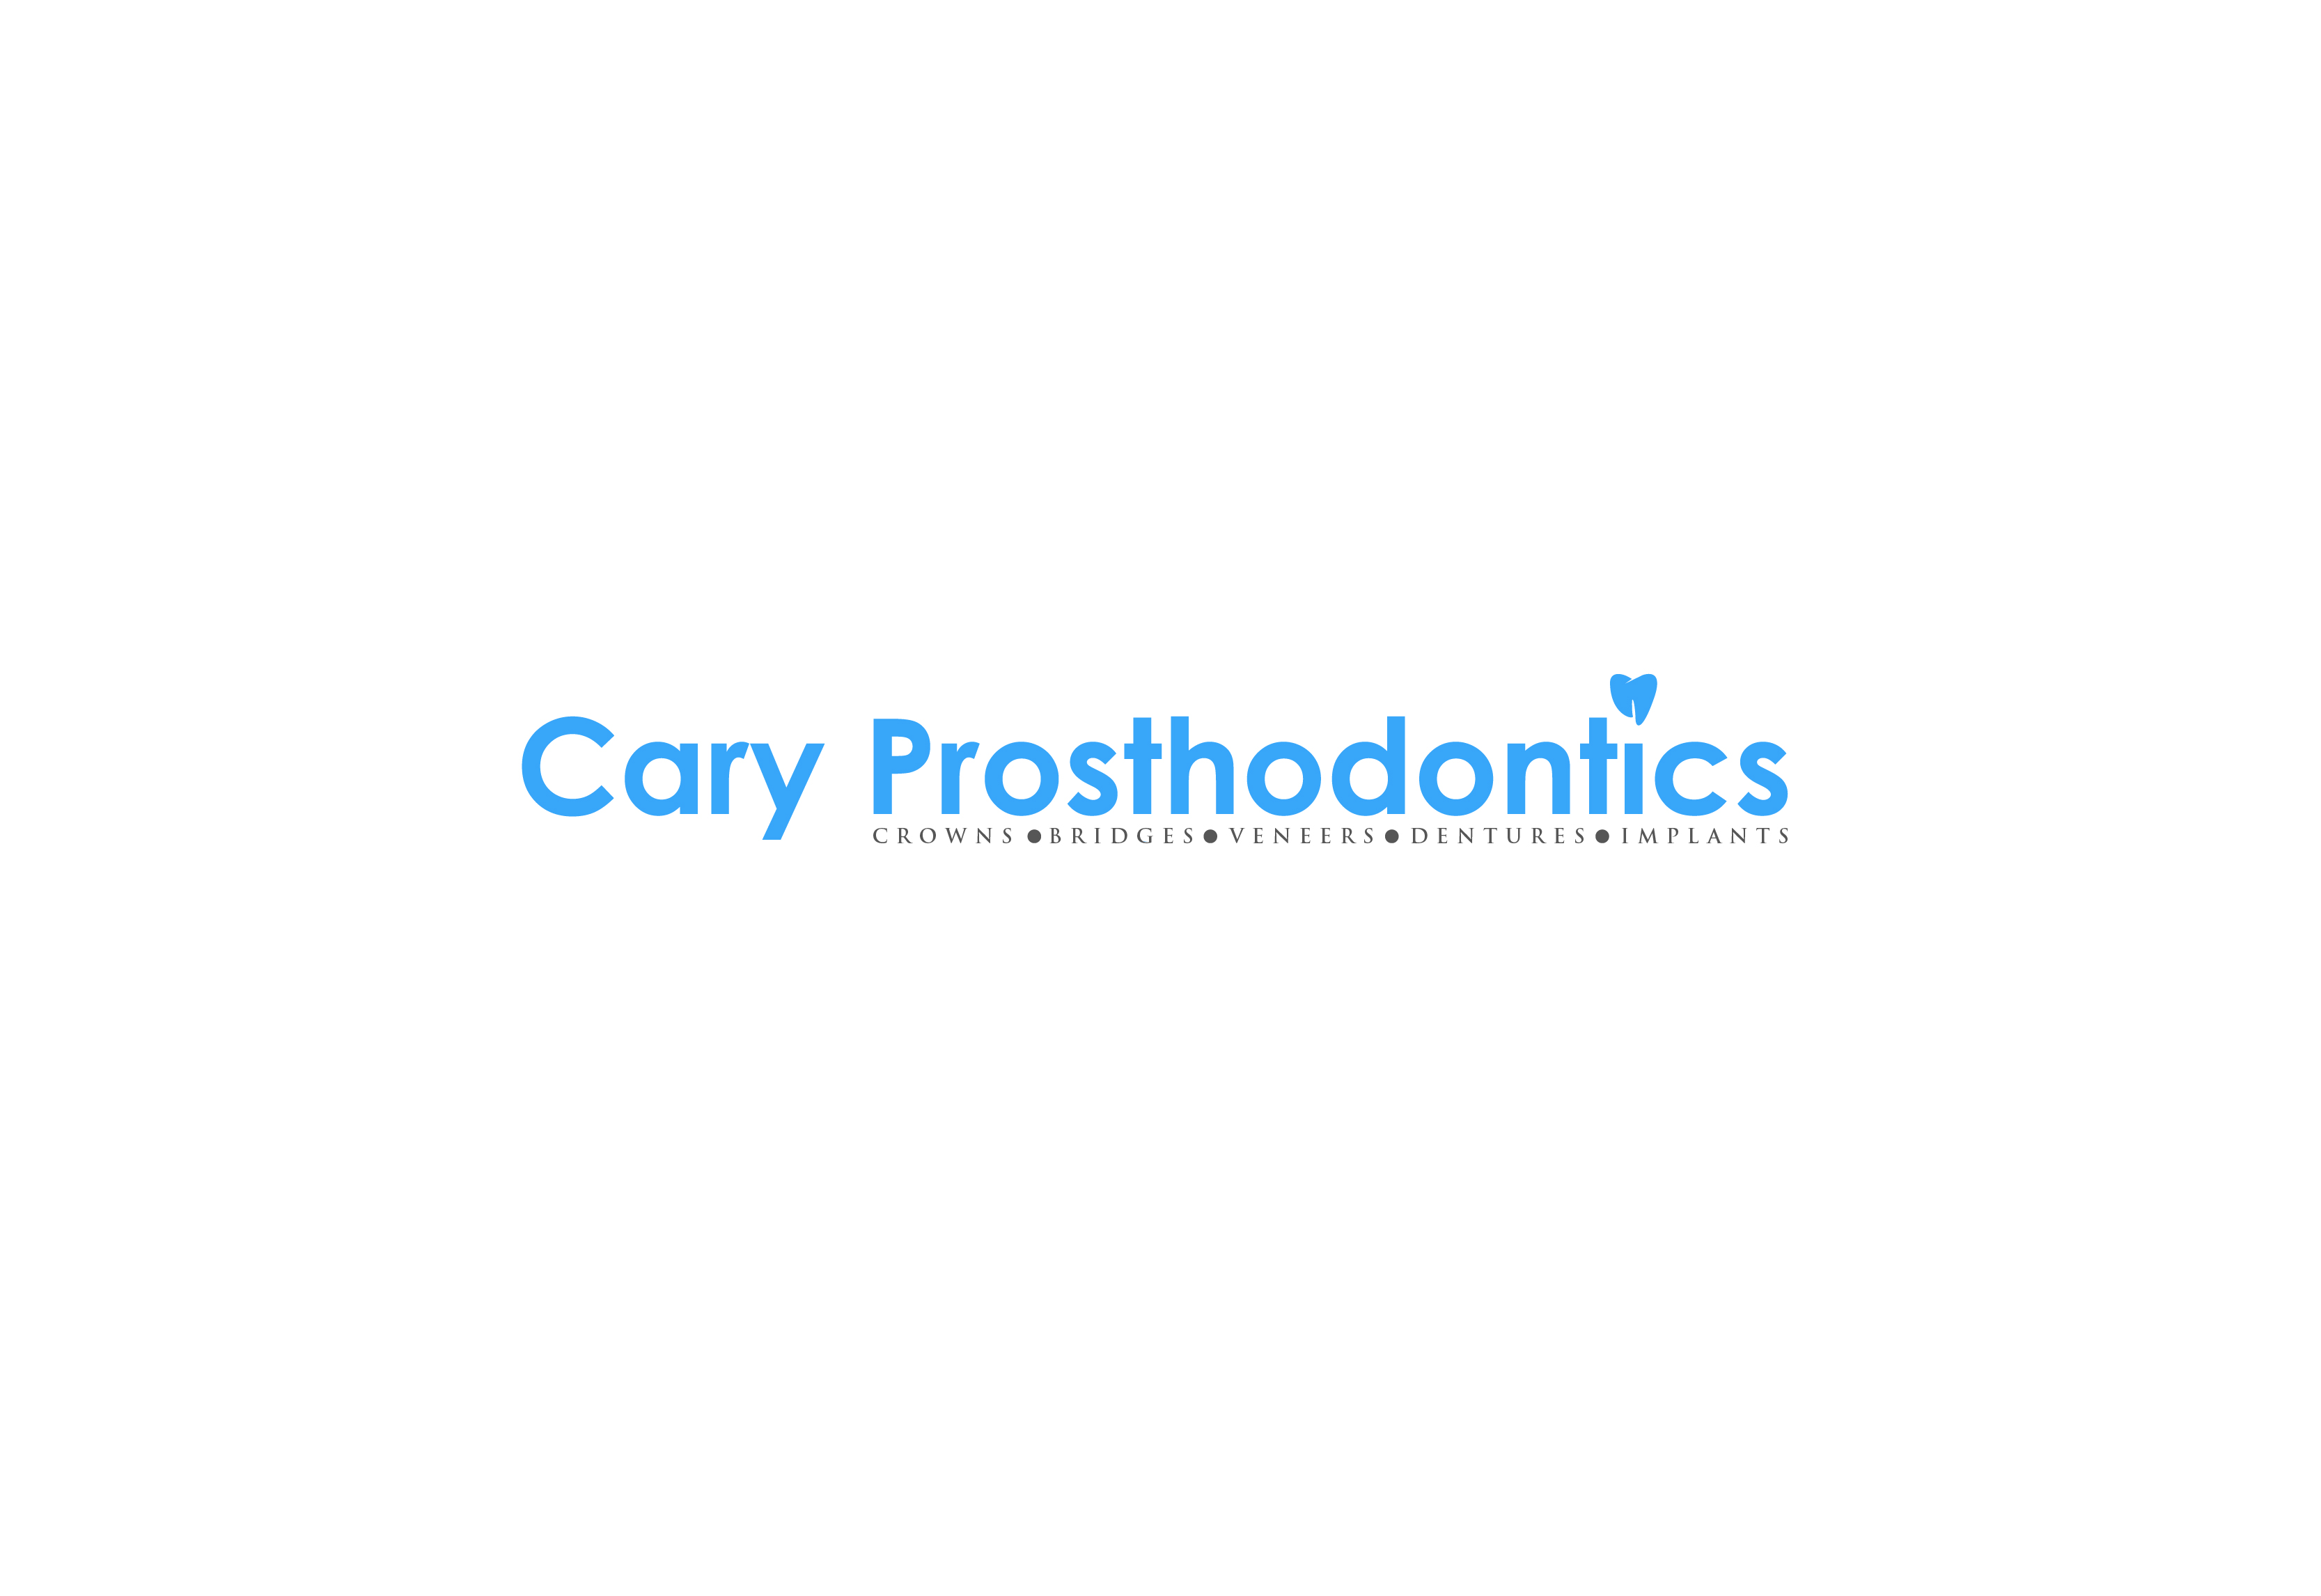 Logo Design by Cyril bail Geronimo - Entry No. 95 in the Logo Design Contest Cary Prosthodontics Logo Design.